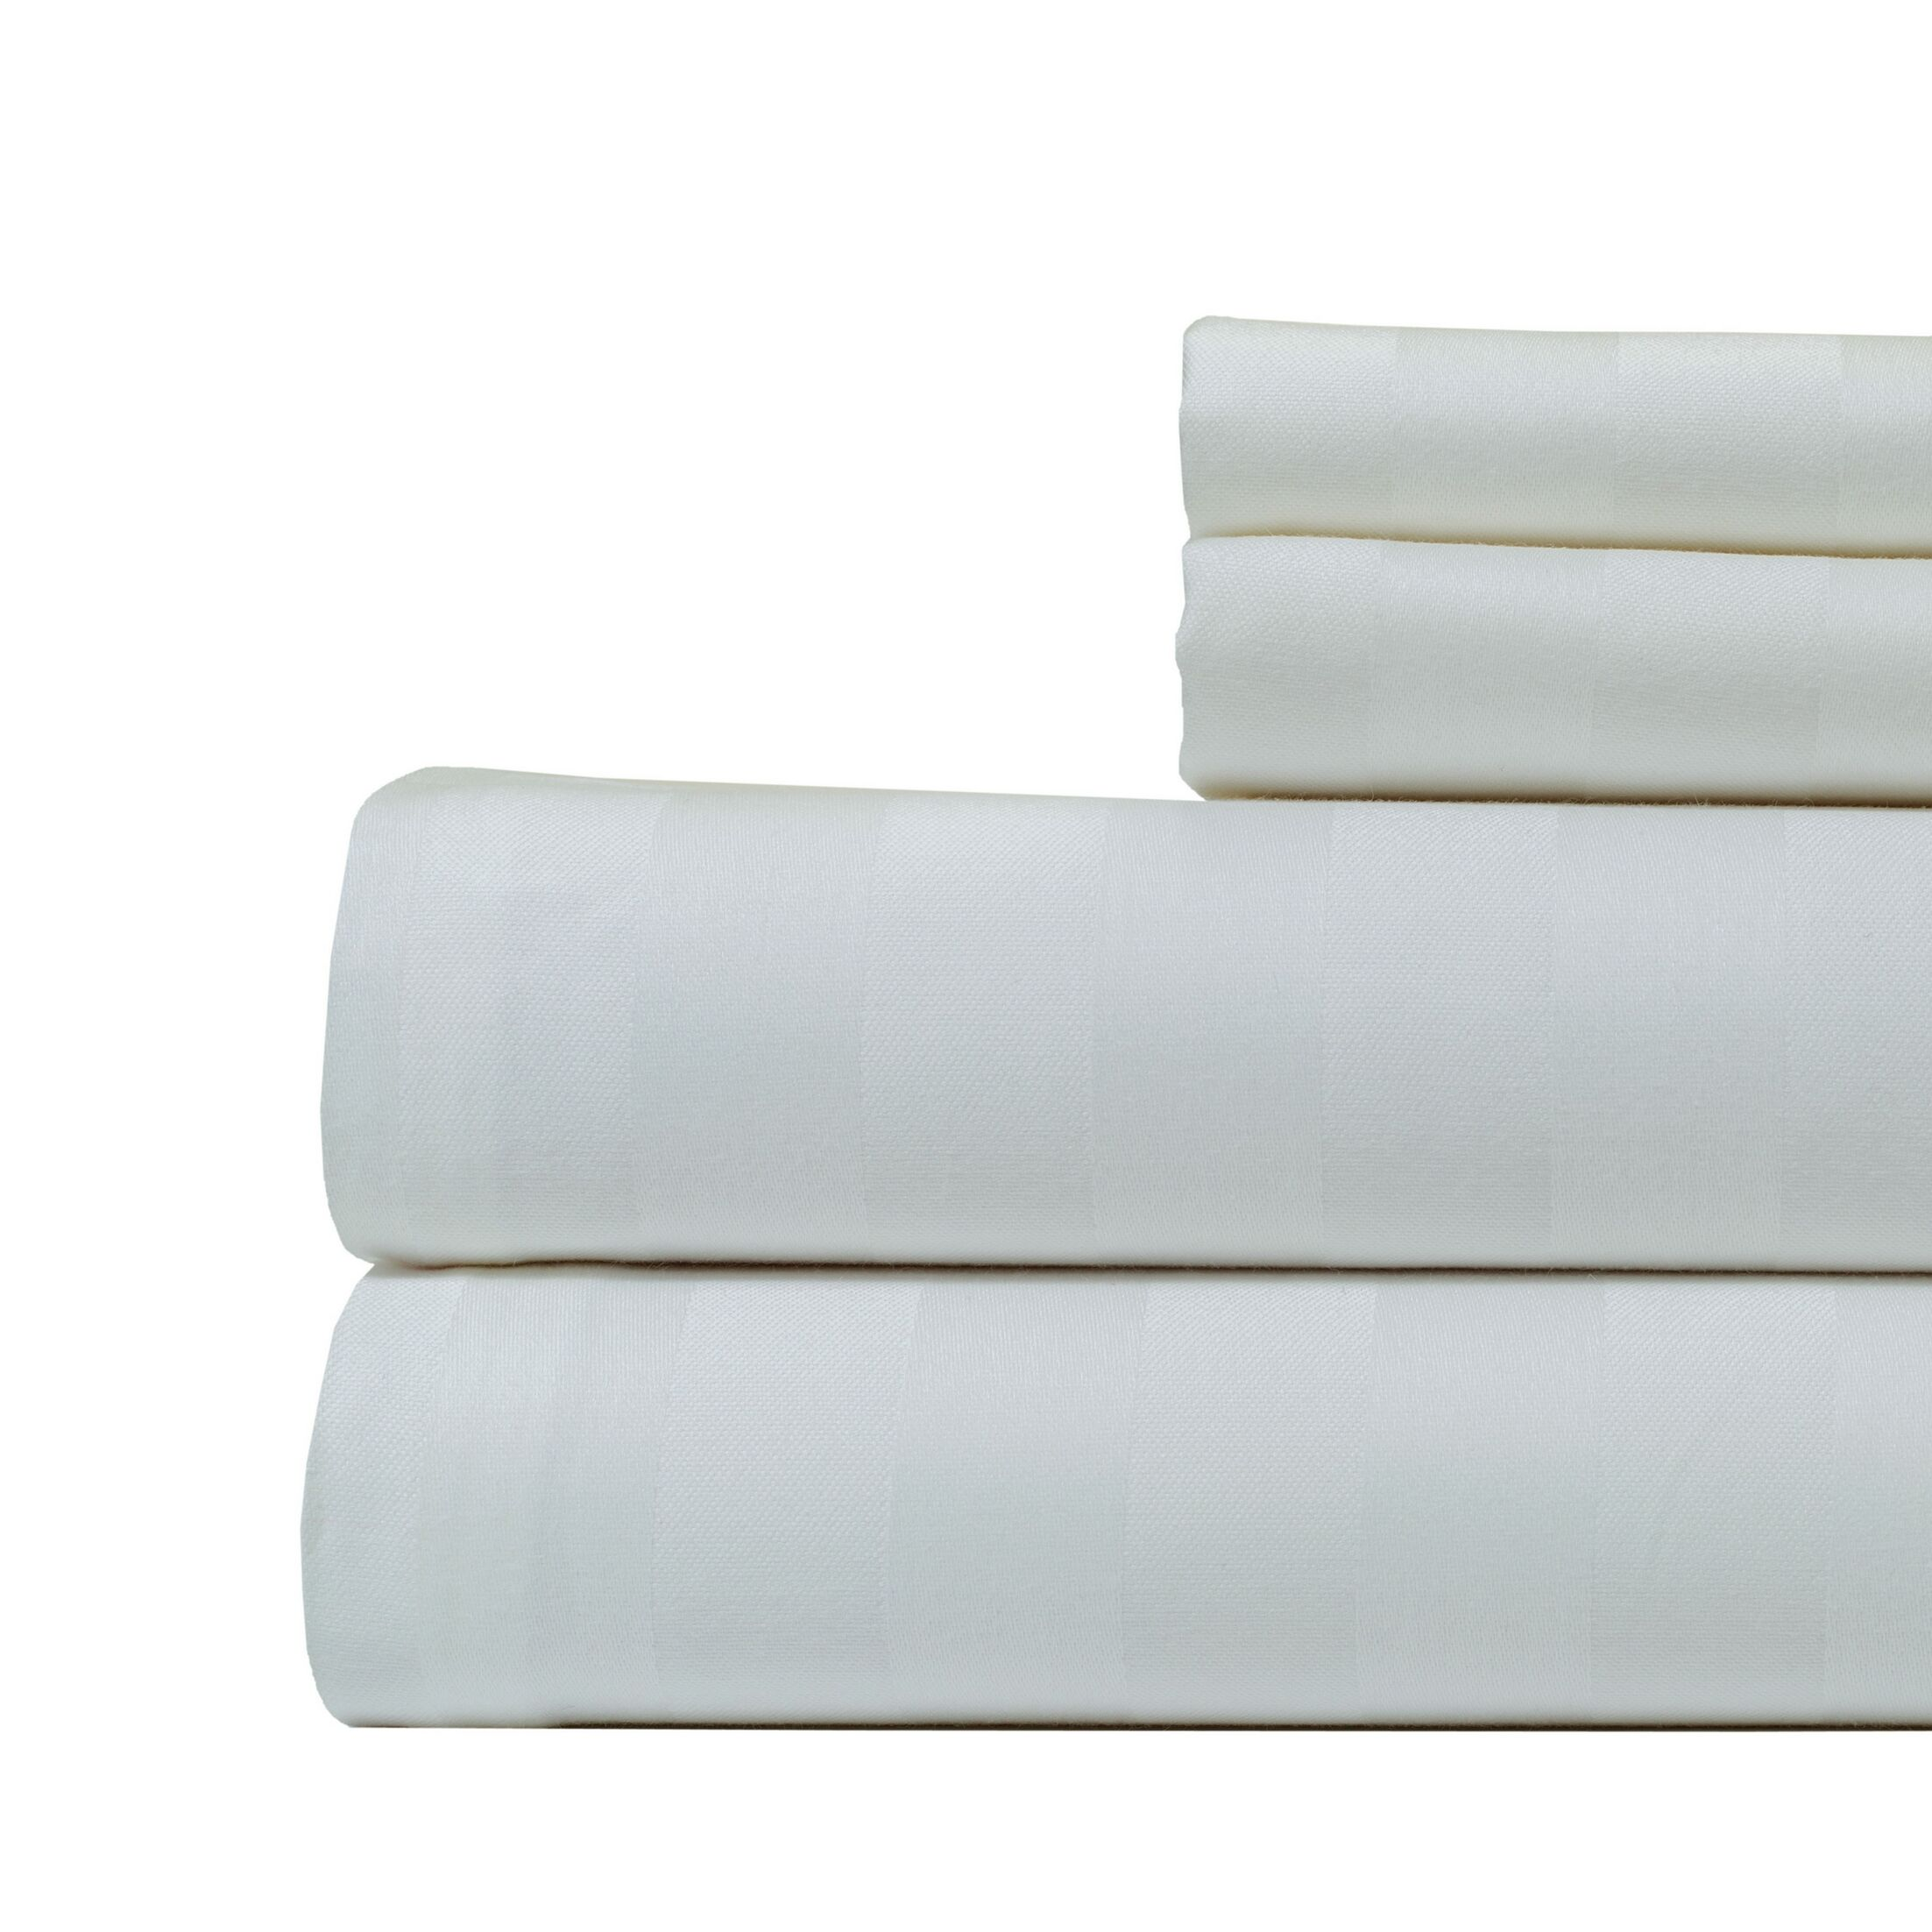 4 Piece 500 Thread Count Egyptian Quality Cotton Sheet Set Color: White, Size: California King